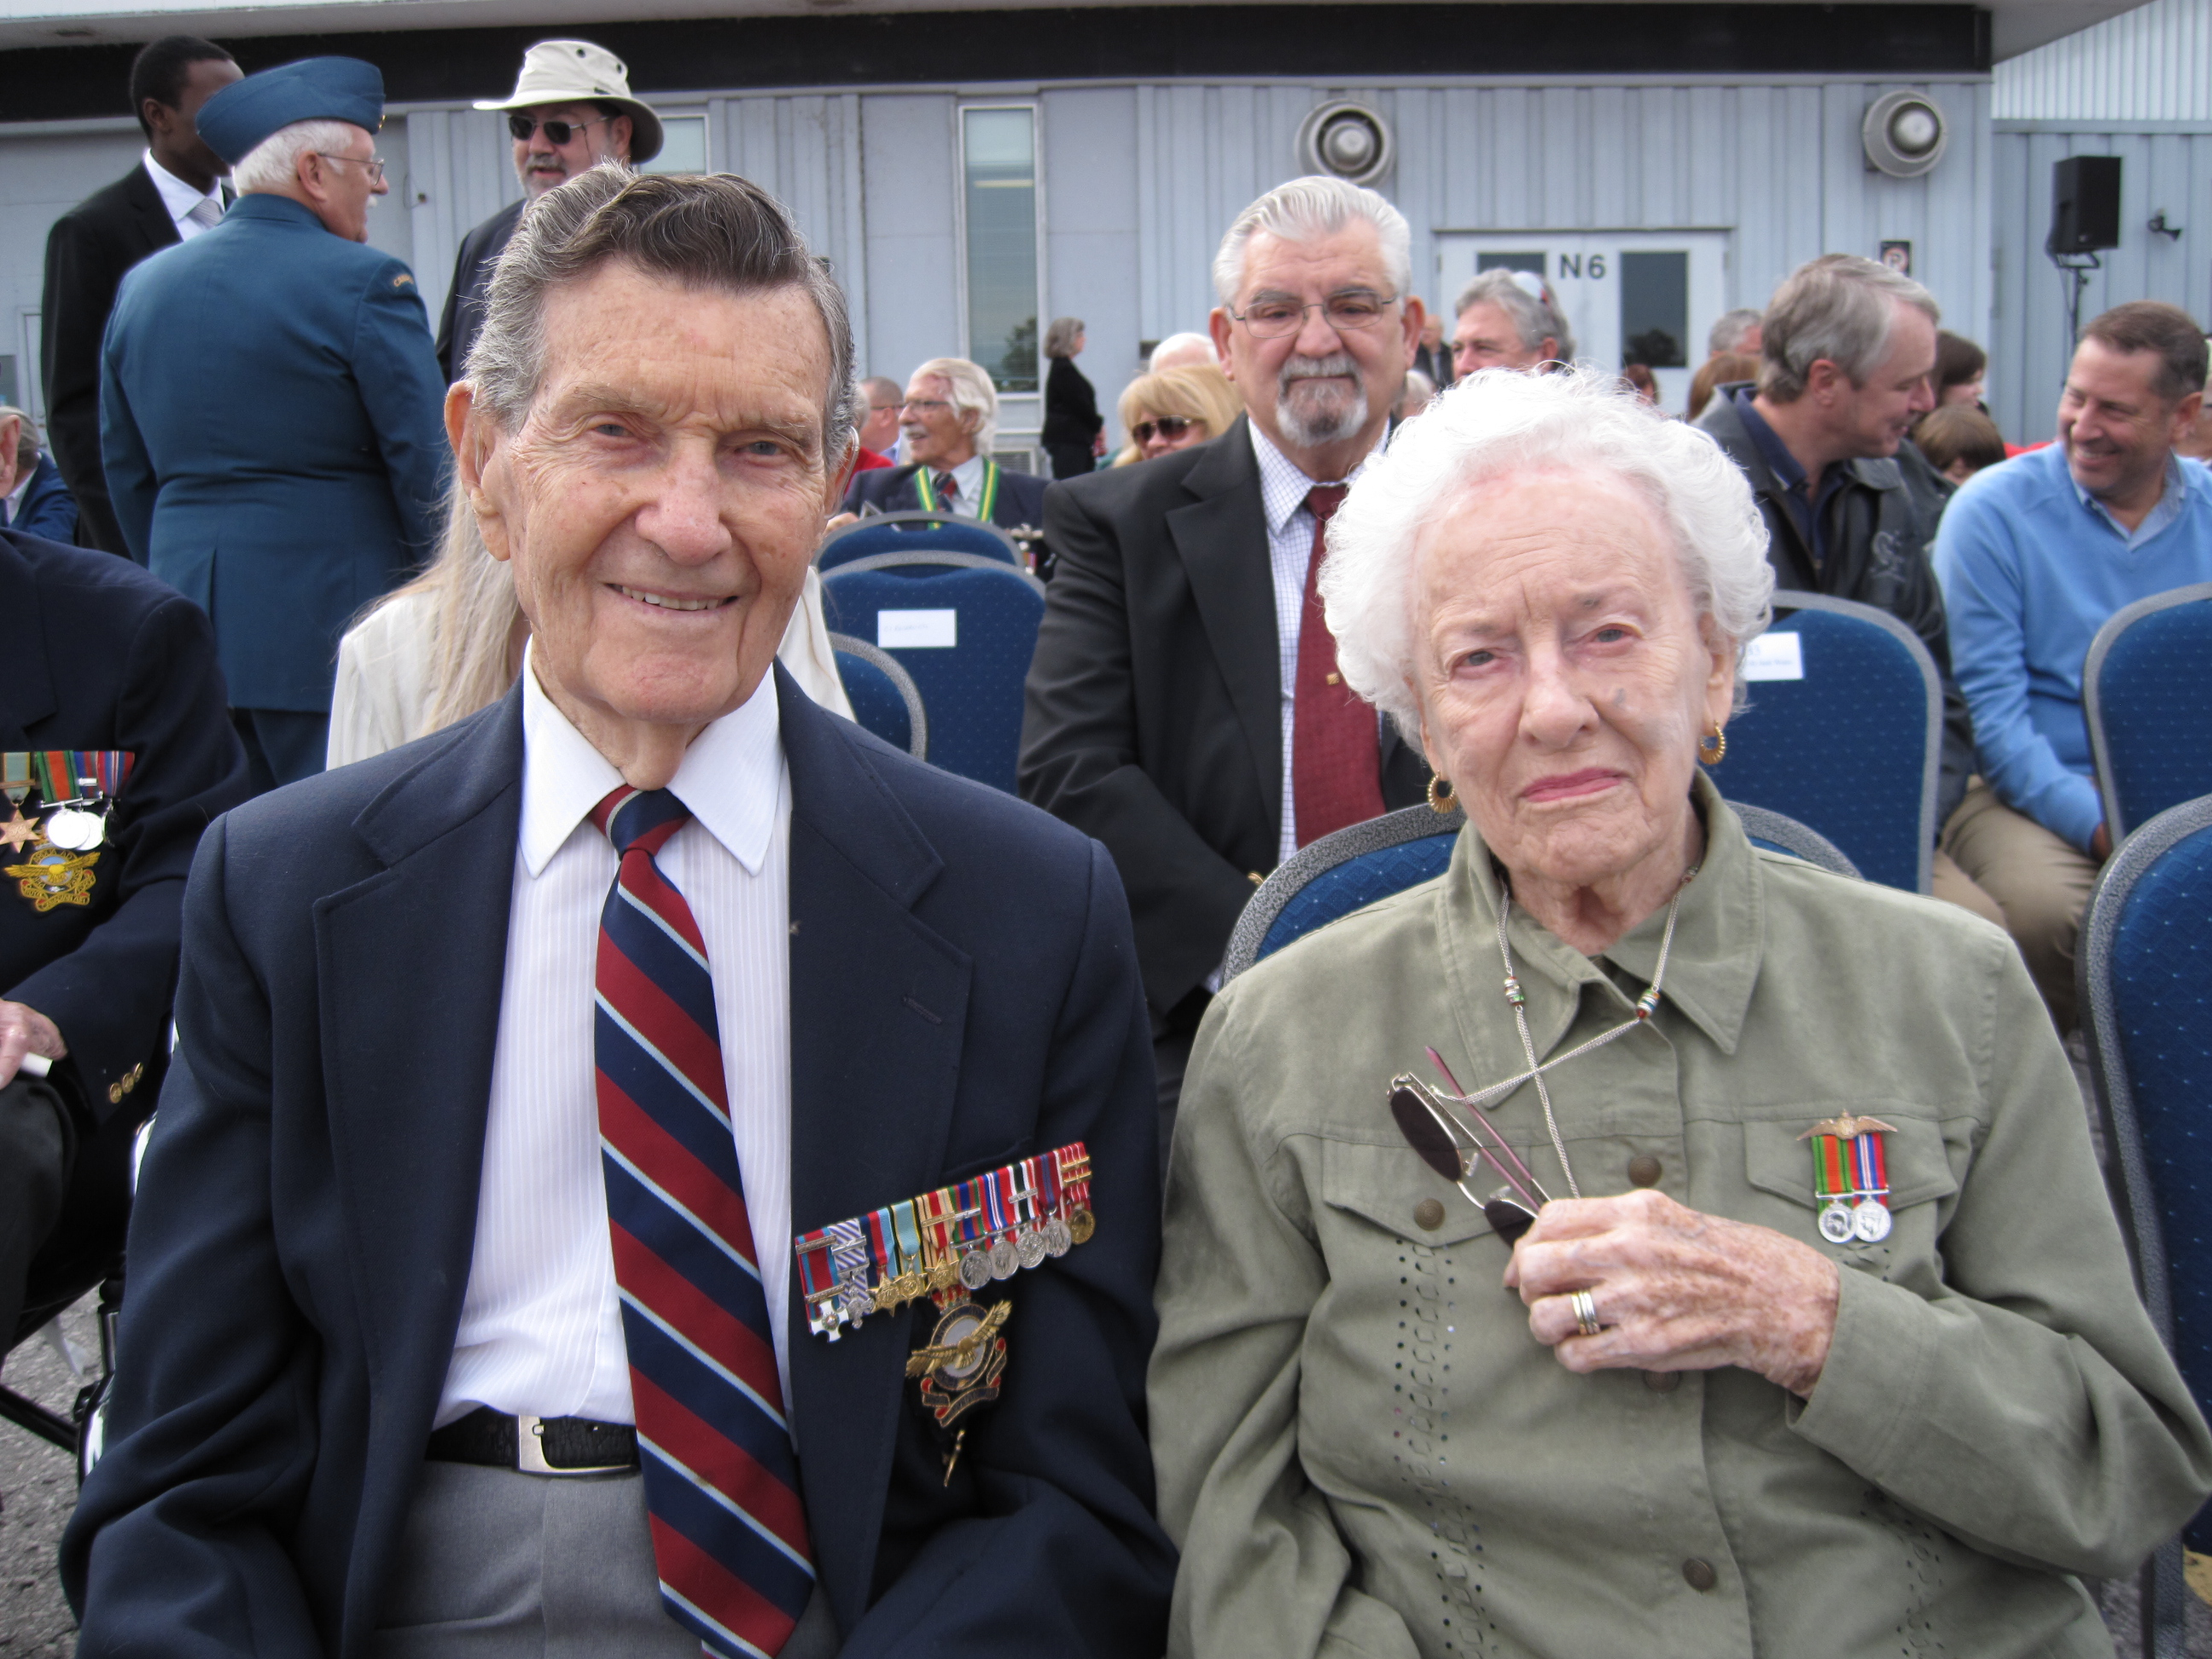 Brigadier-General (retired) Jack Watts, DFC, a Bomber Command navigator, and his wife Norma Zelia Watts, attend the Battle of Britain Parade held at the Canadian Aviation and Space Museum in Ottawa on September 15, 2013. They met in England in the spring of 1944 while Mrs. Watts, néeTilley, was serving with the Women's Auxiliary Air Force, also with Bomber Command. PHOTO: Holly Bridges